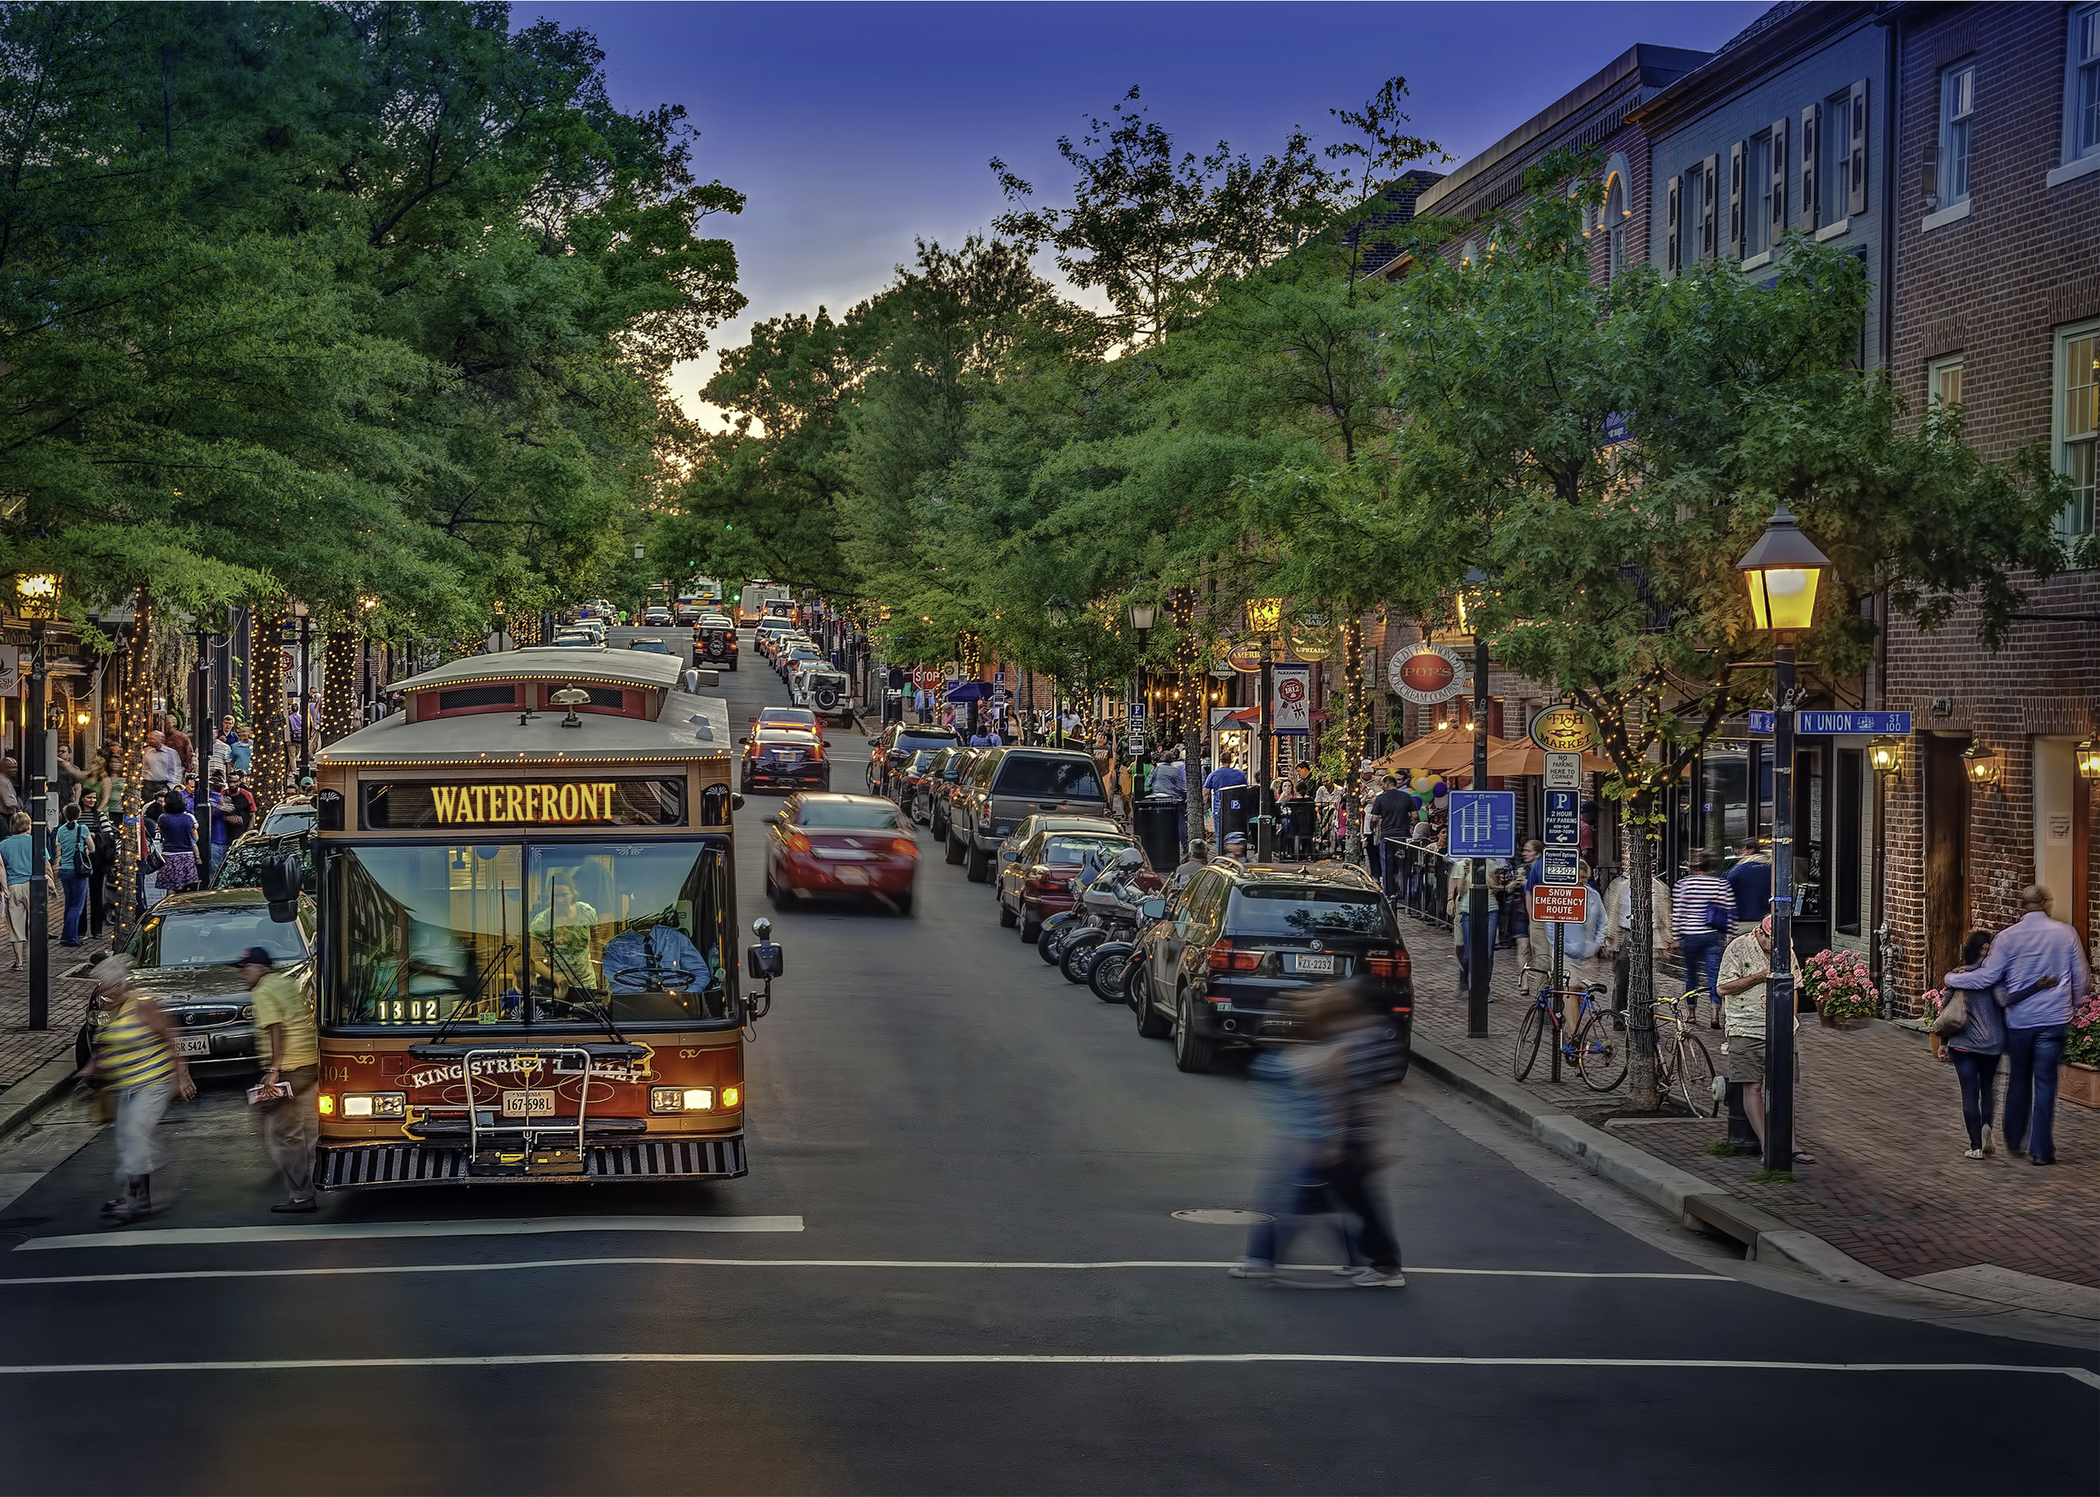 King_St_w_Trolley_CREDIT_R_Kennedy_for_Visit_Alexandria_Waterfront